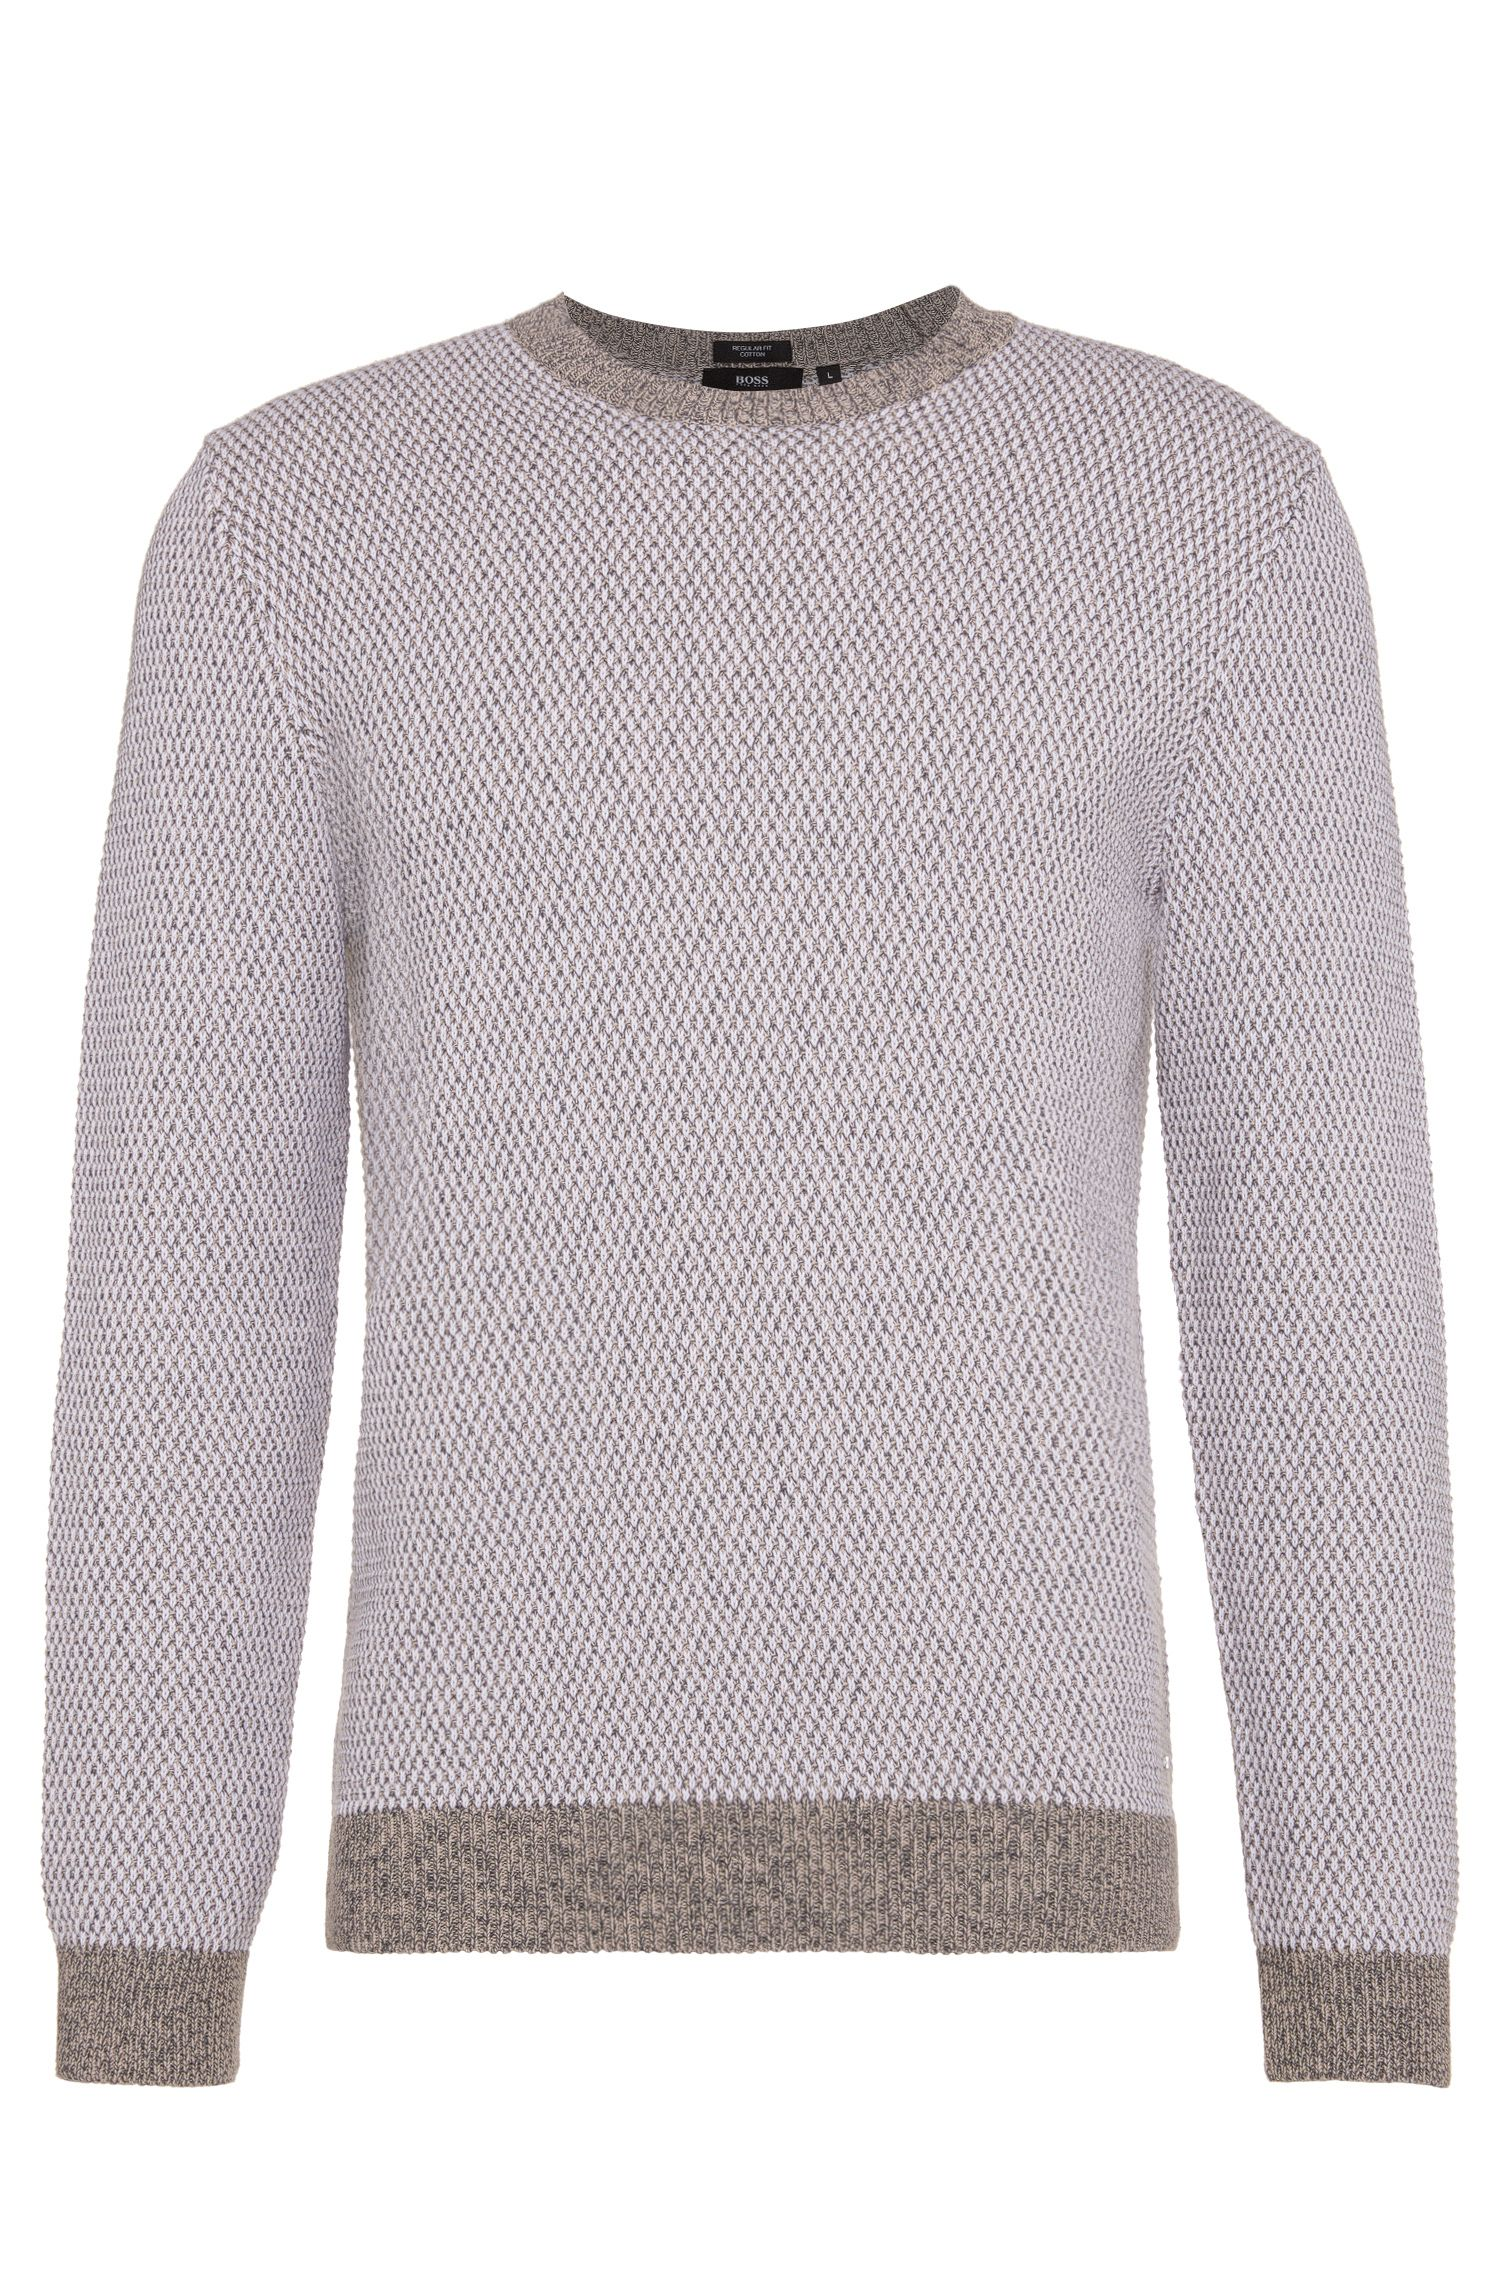 Regular-fit sweater in cotton with a round neckline: 'Heldo'